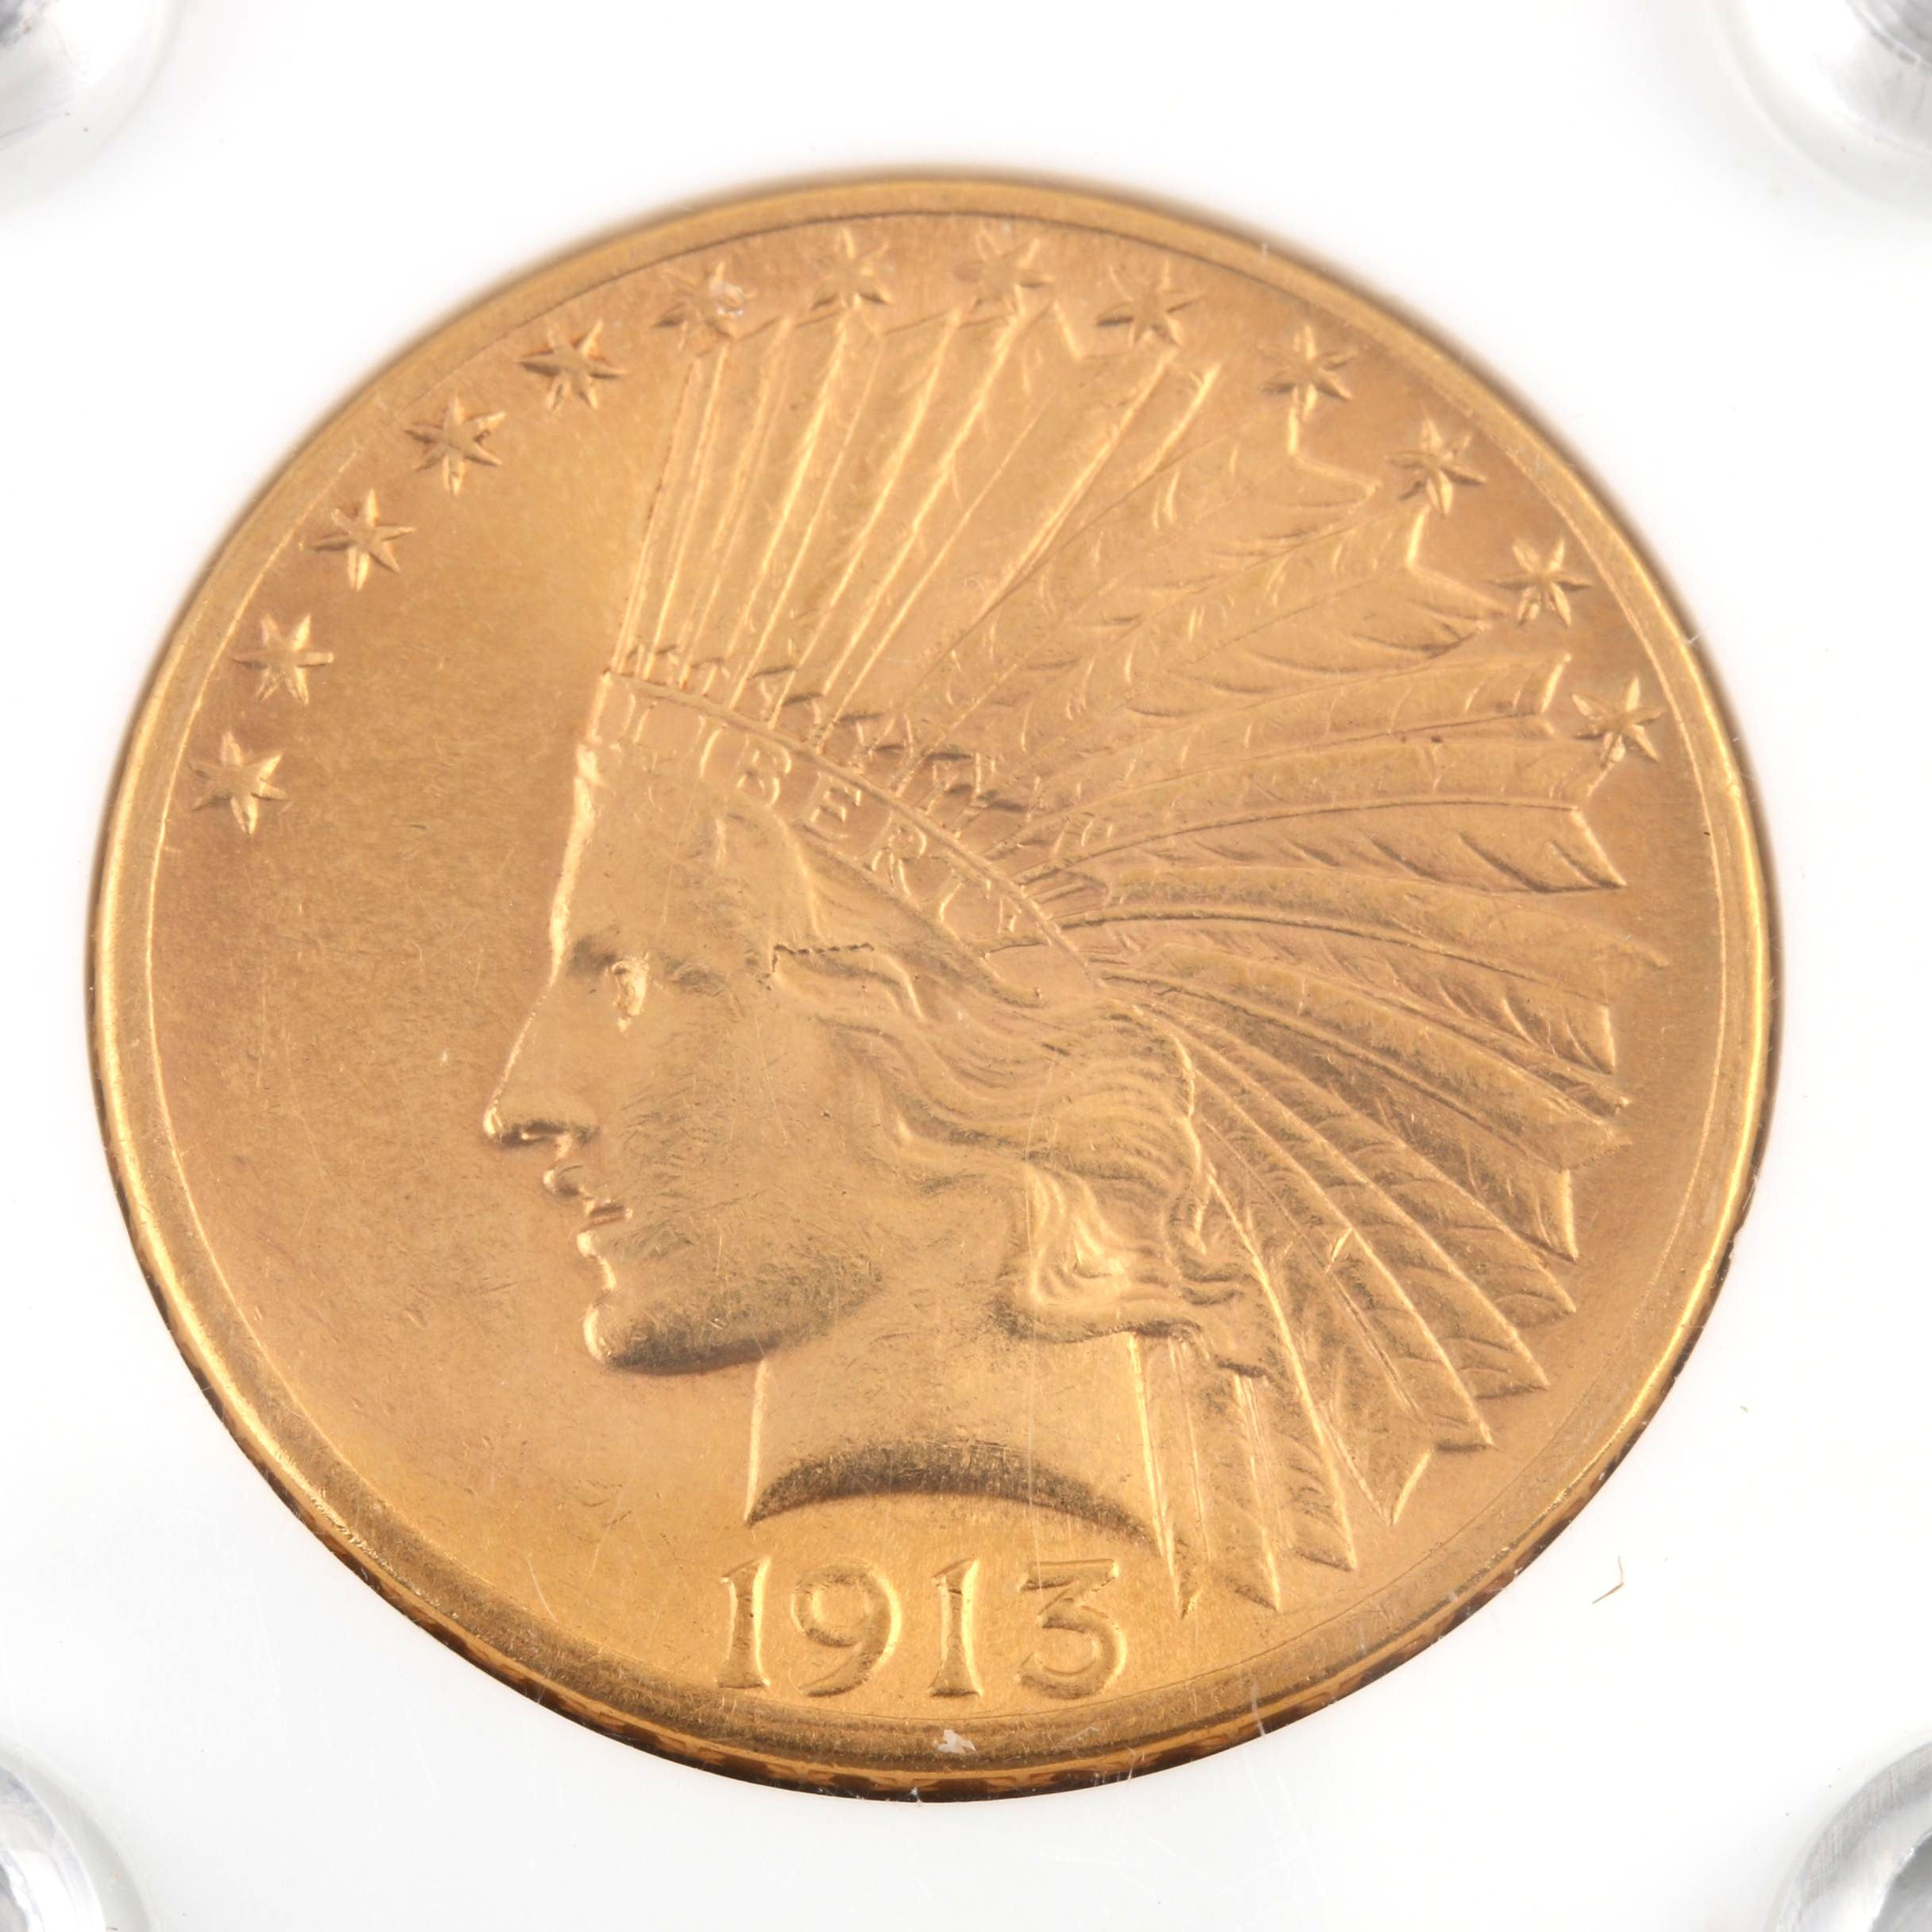 1915 Indian Head $10 Gold Coin